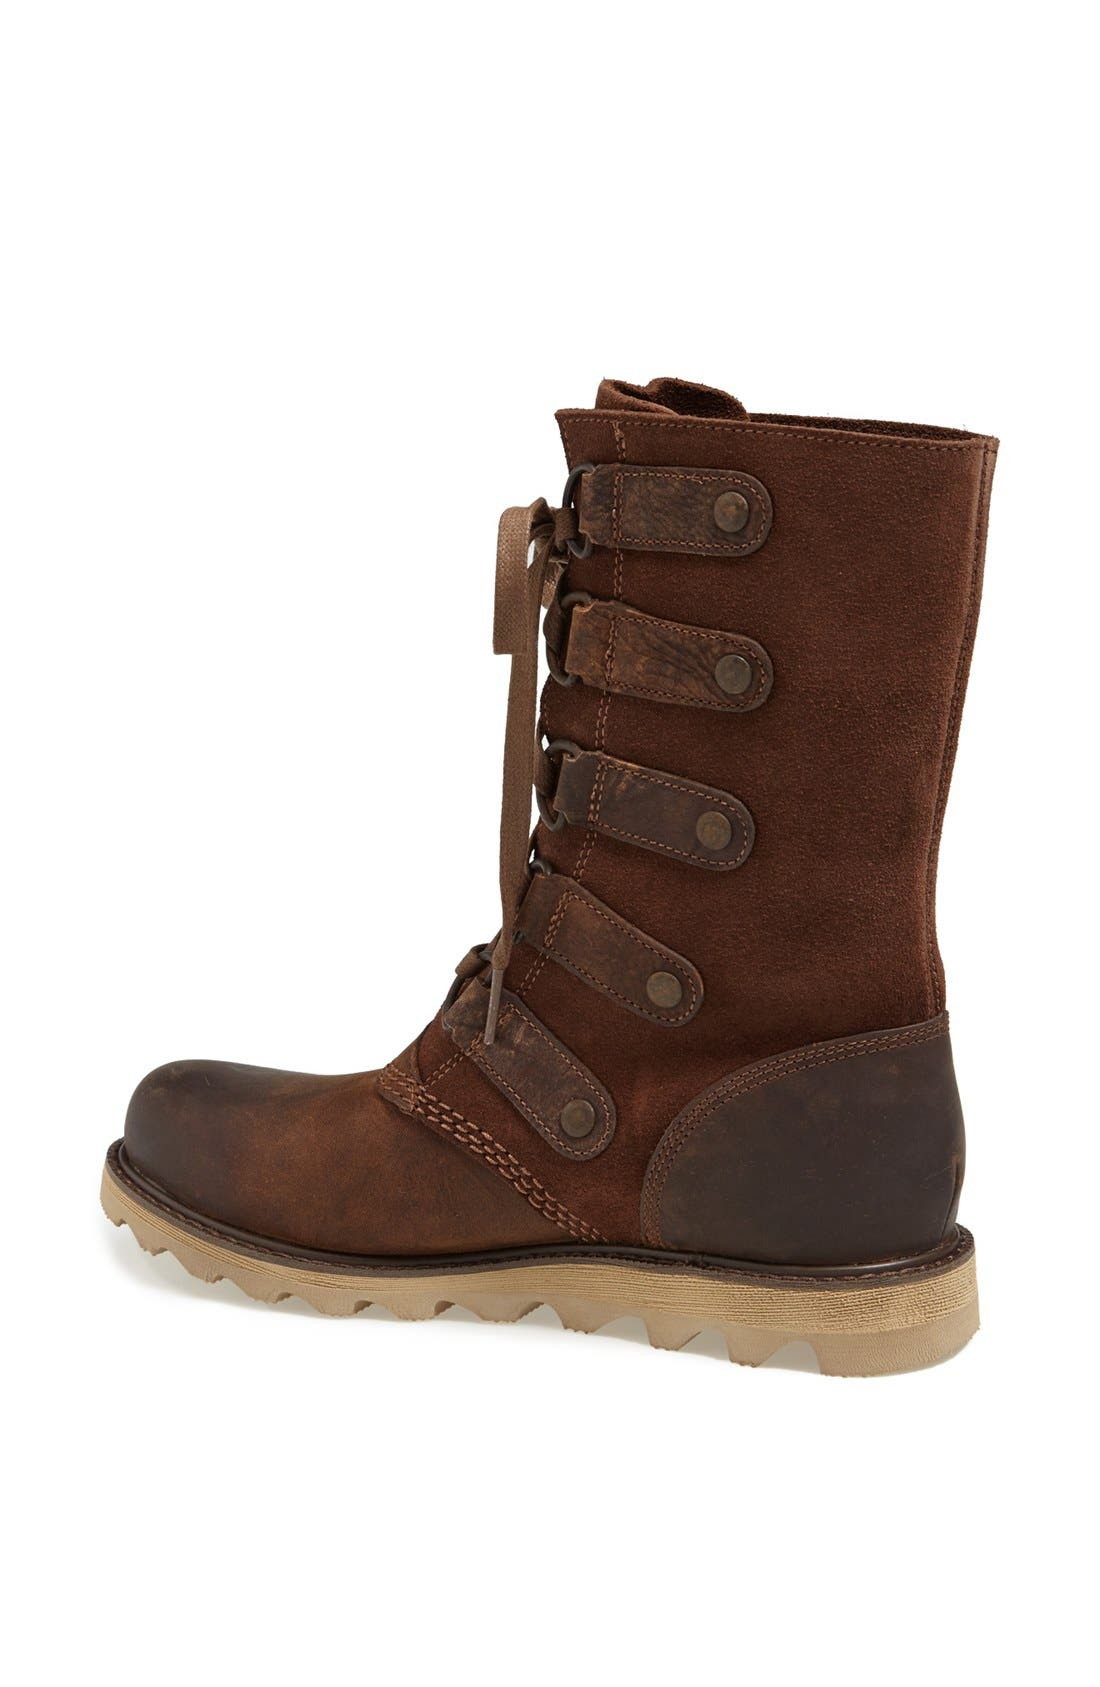 SOREL,                             'Scotia' Lace-Up Waterproof Leather Boot,                             Alternate thumbnail 4, color,                             202